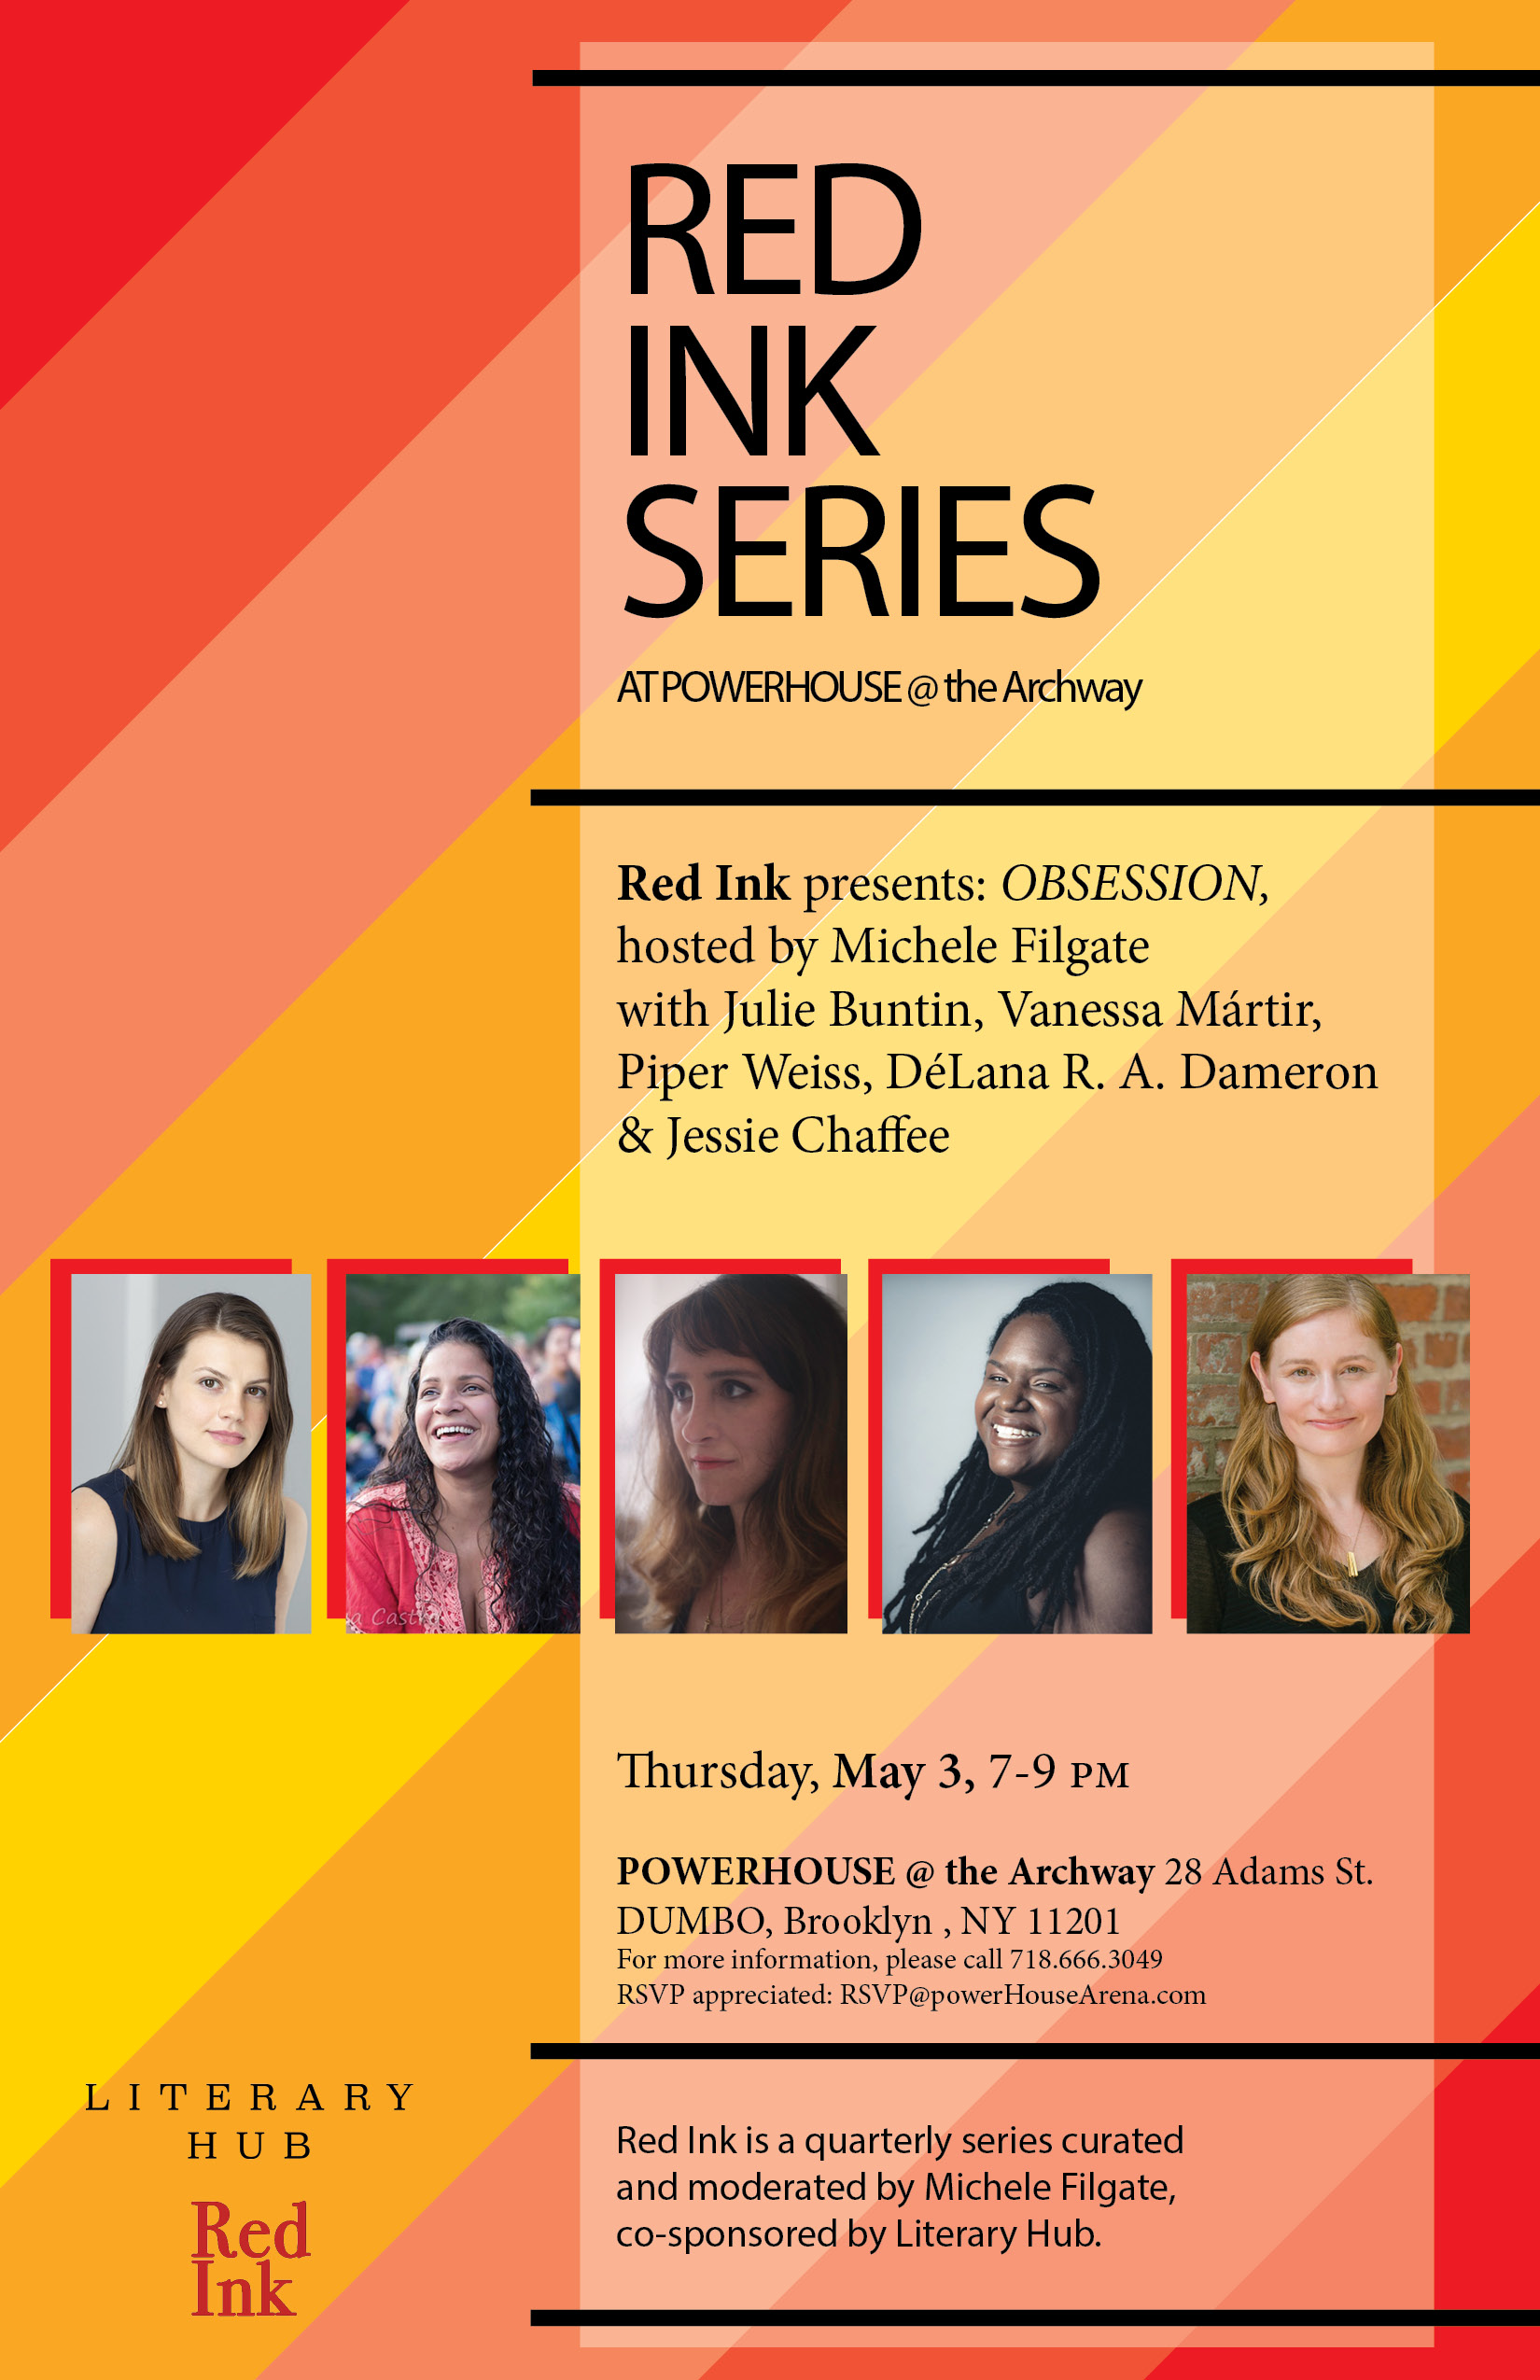 Red Ink Series: OBSESSION, hosted by Michele Filgate with Julie Buntin, Vanessa Mártir, Piper Weiss, DéLana R.A. Dameron & Jessie Chaffee